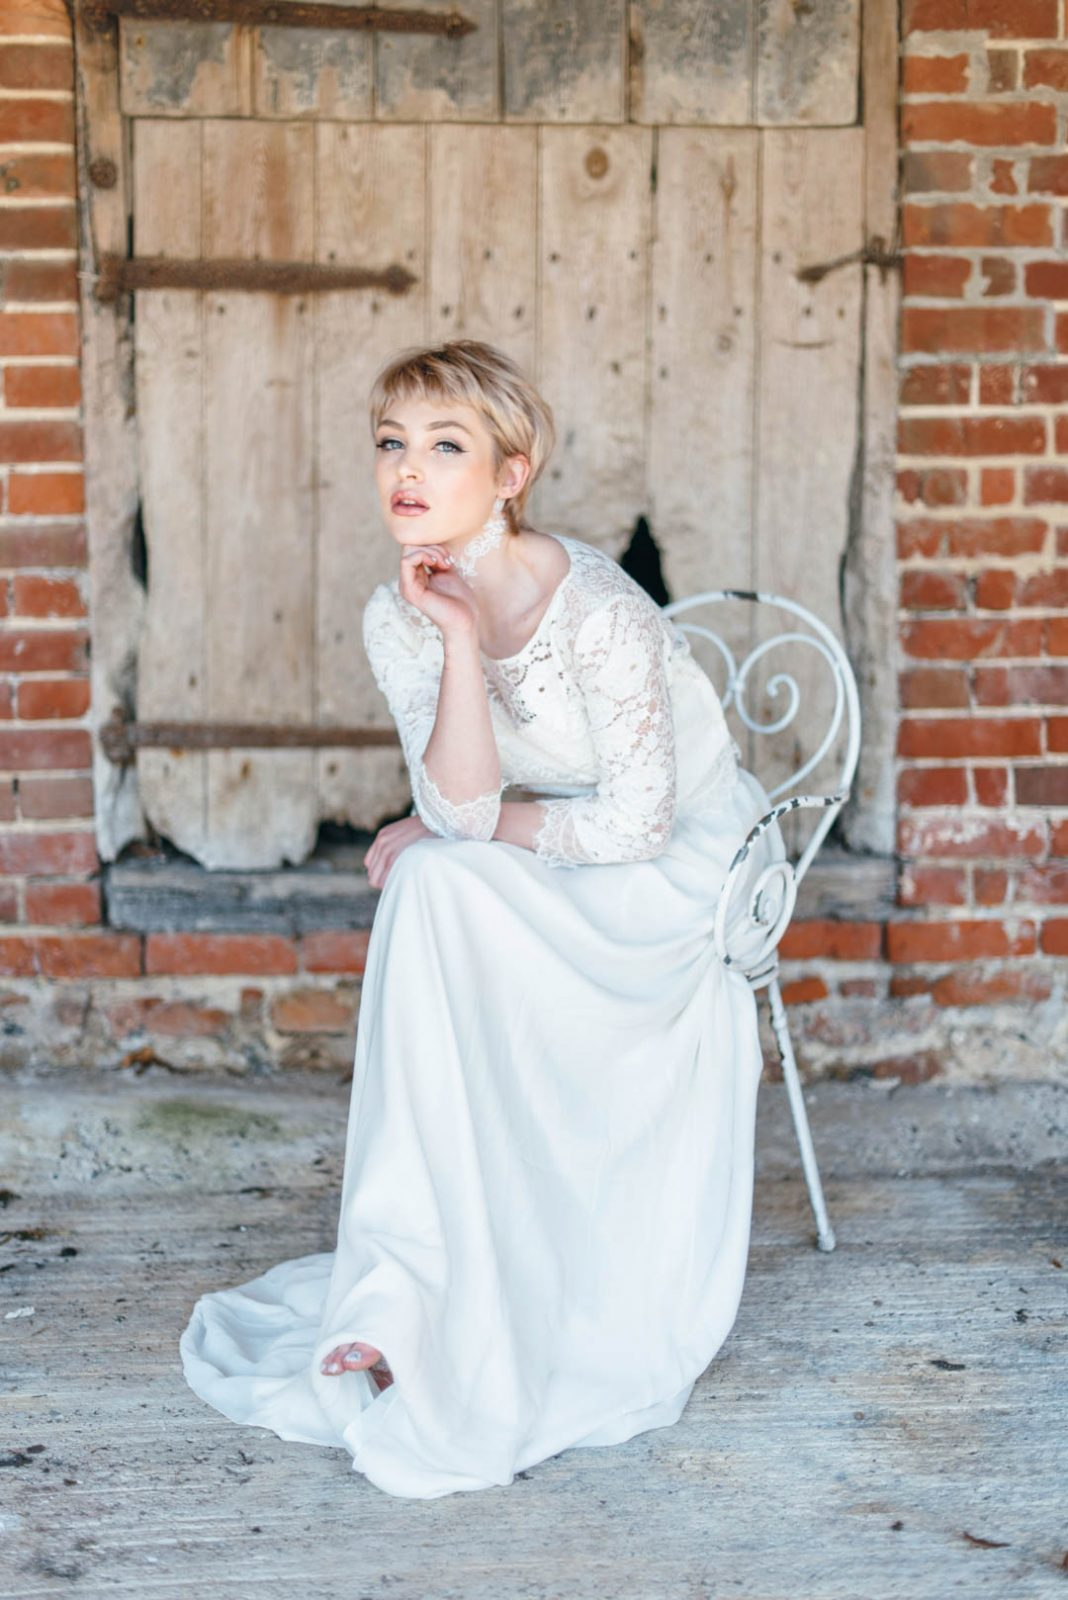 BethMoseleyPhotography_WhiteonWhite-137FINAL1080px wide-41